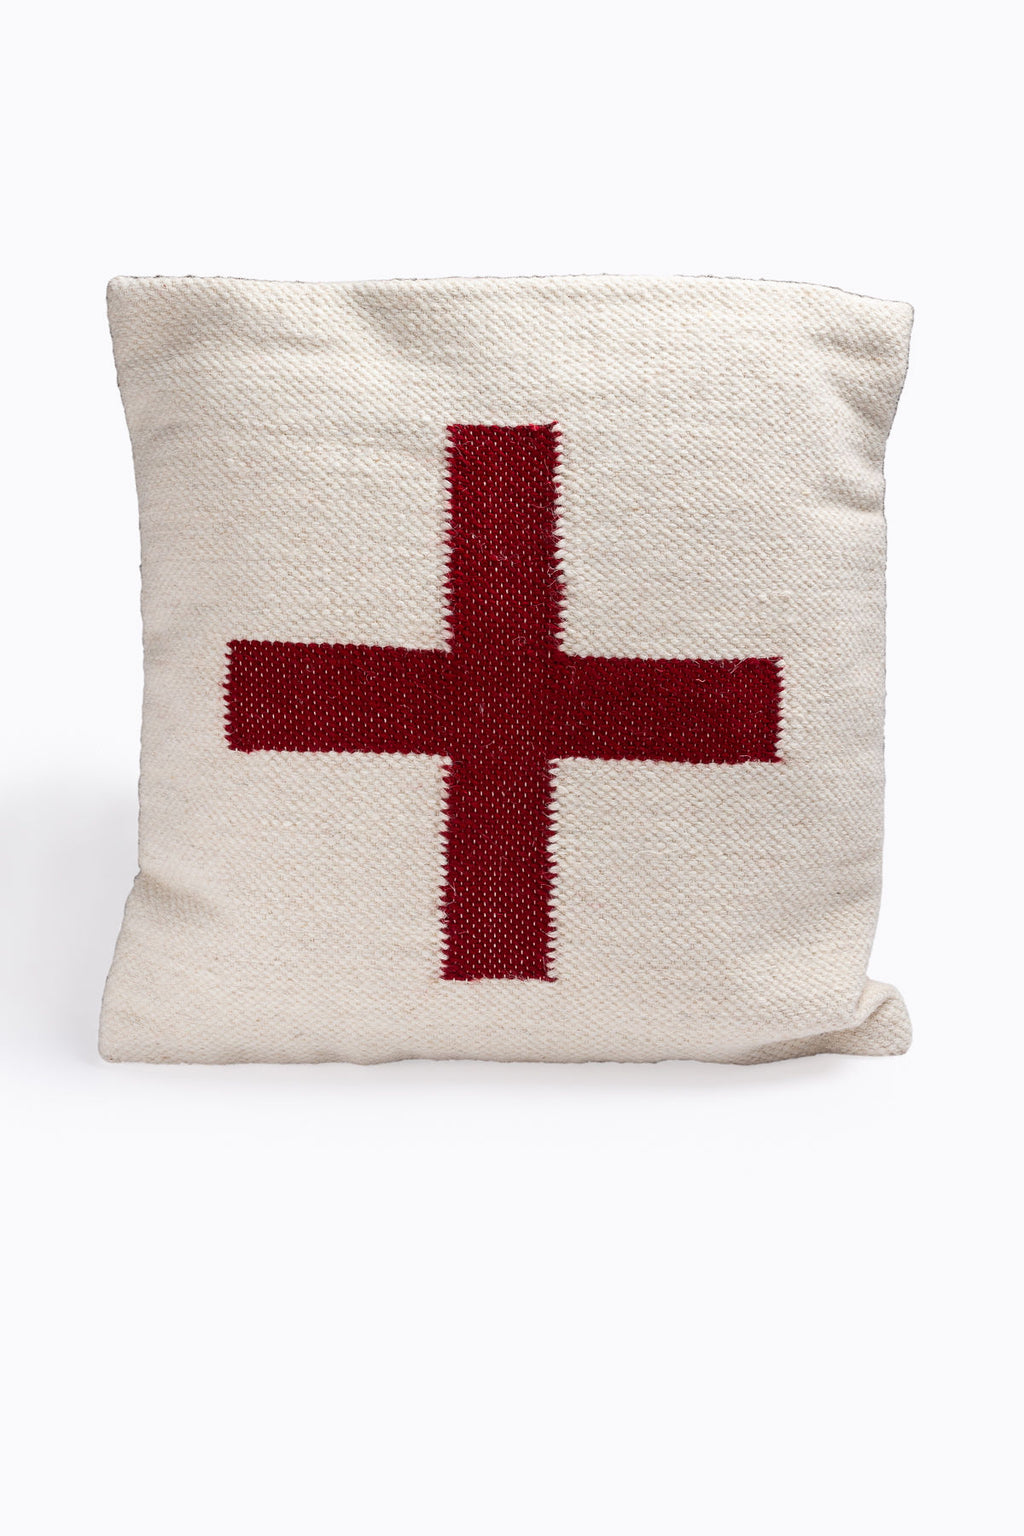 HOME: Square Wool Blend Pillow with Red Cross